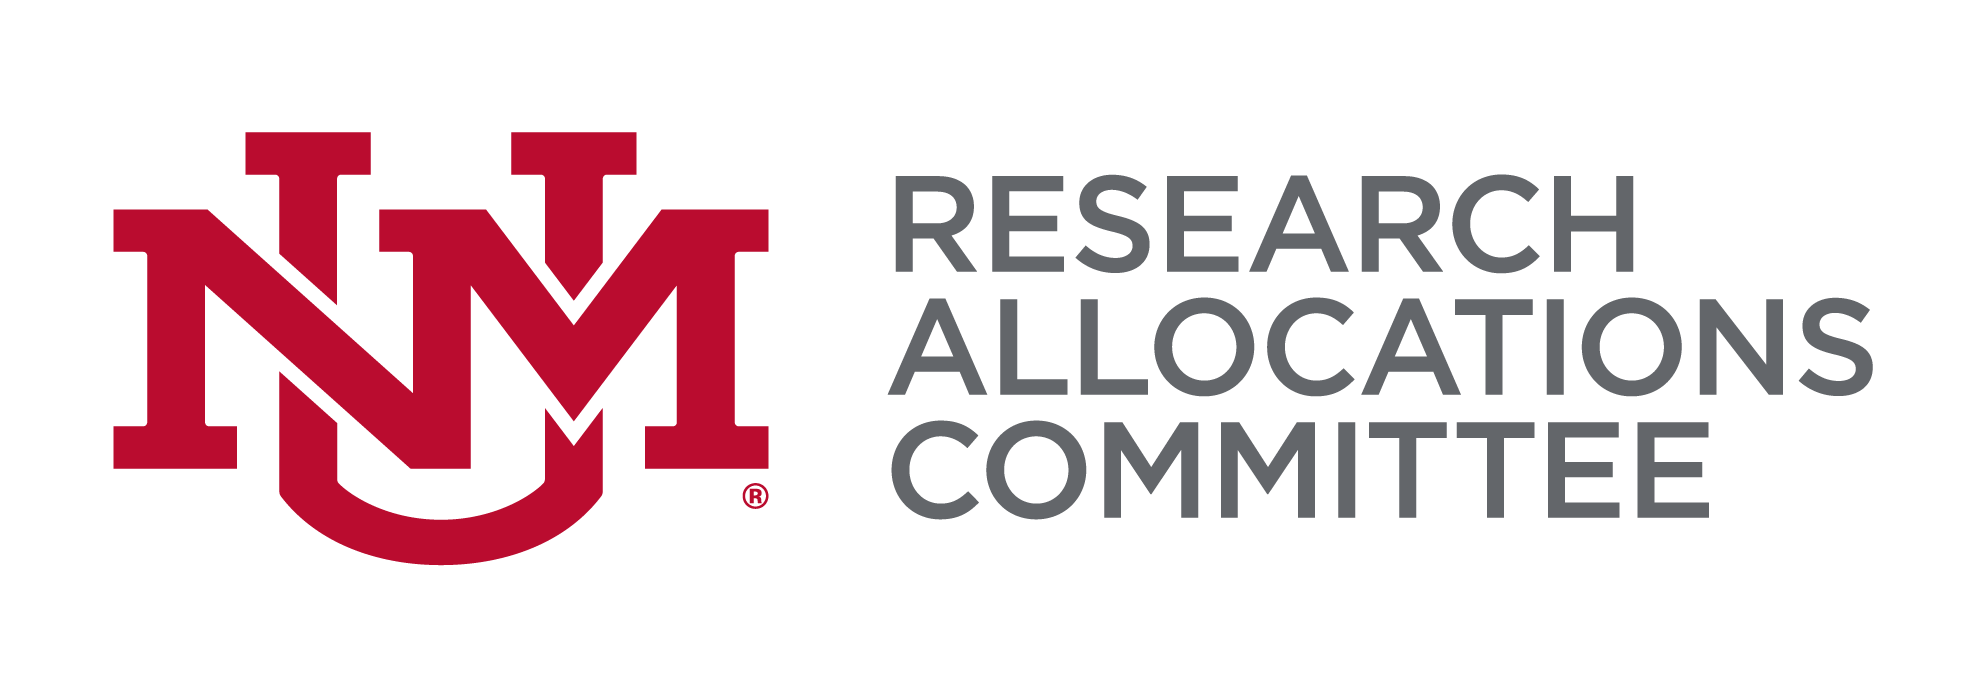 Research Allocations Committee